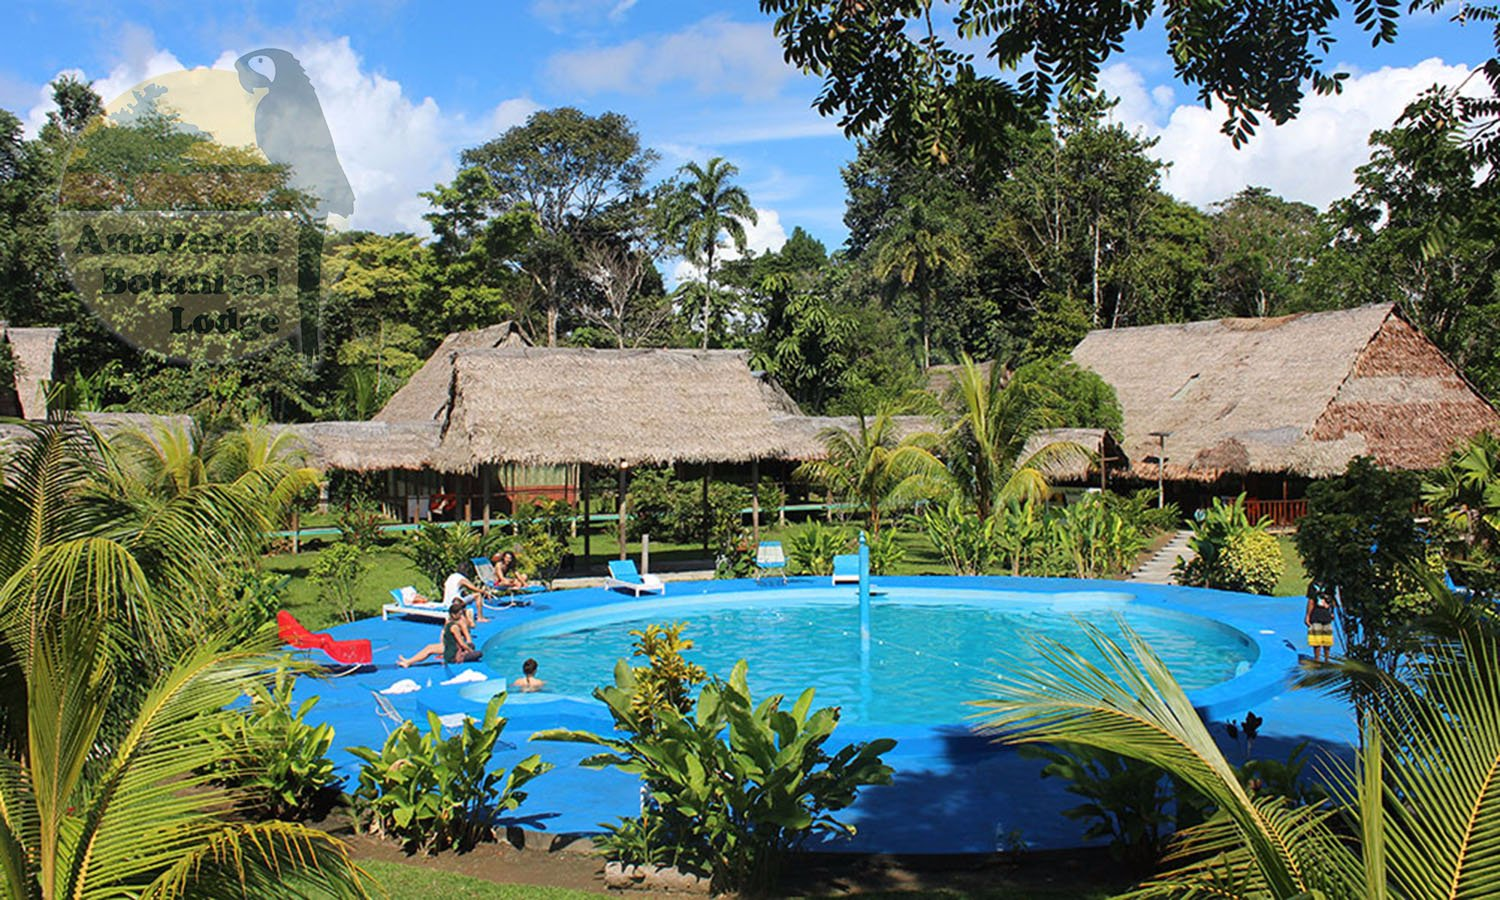 Amazon Piscina Paquete Botanical Lodge En Iquitos Full Viajes Peru